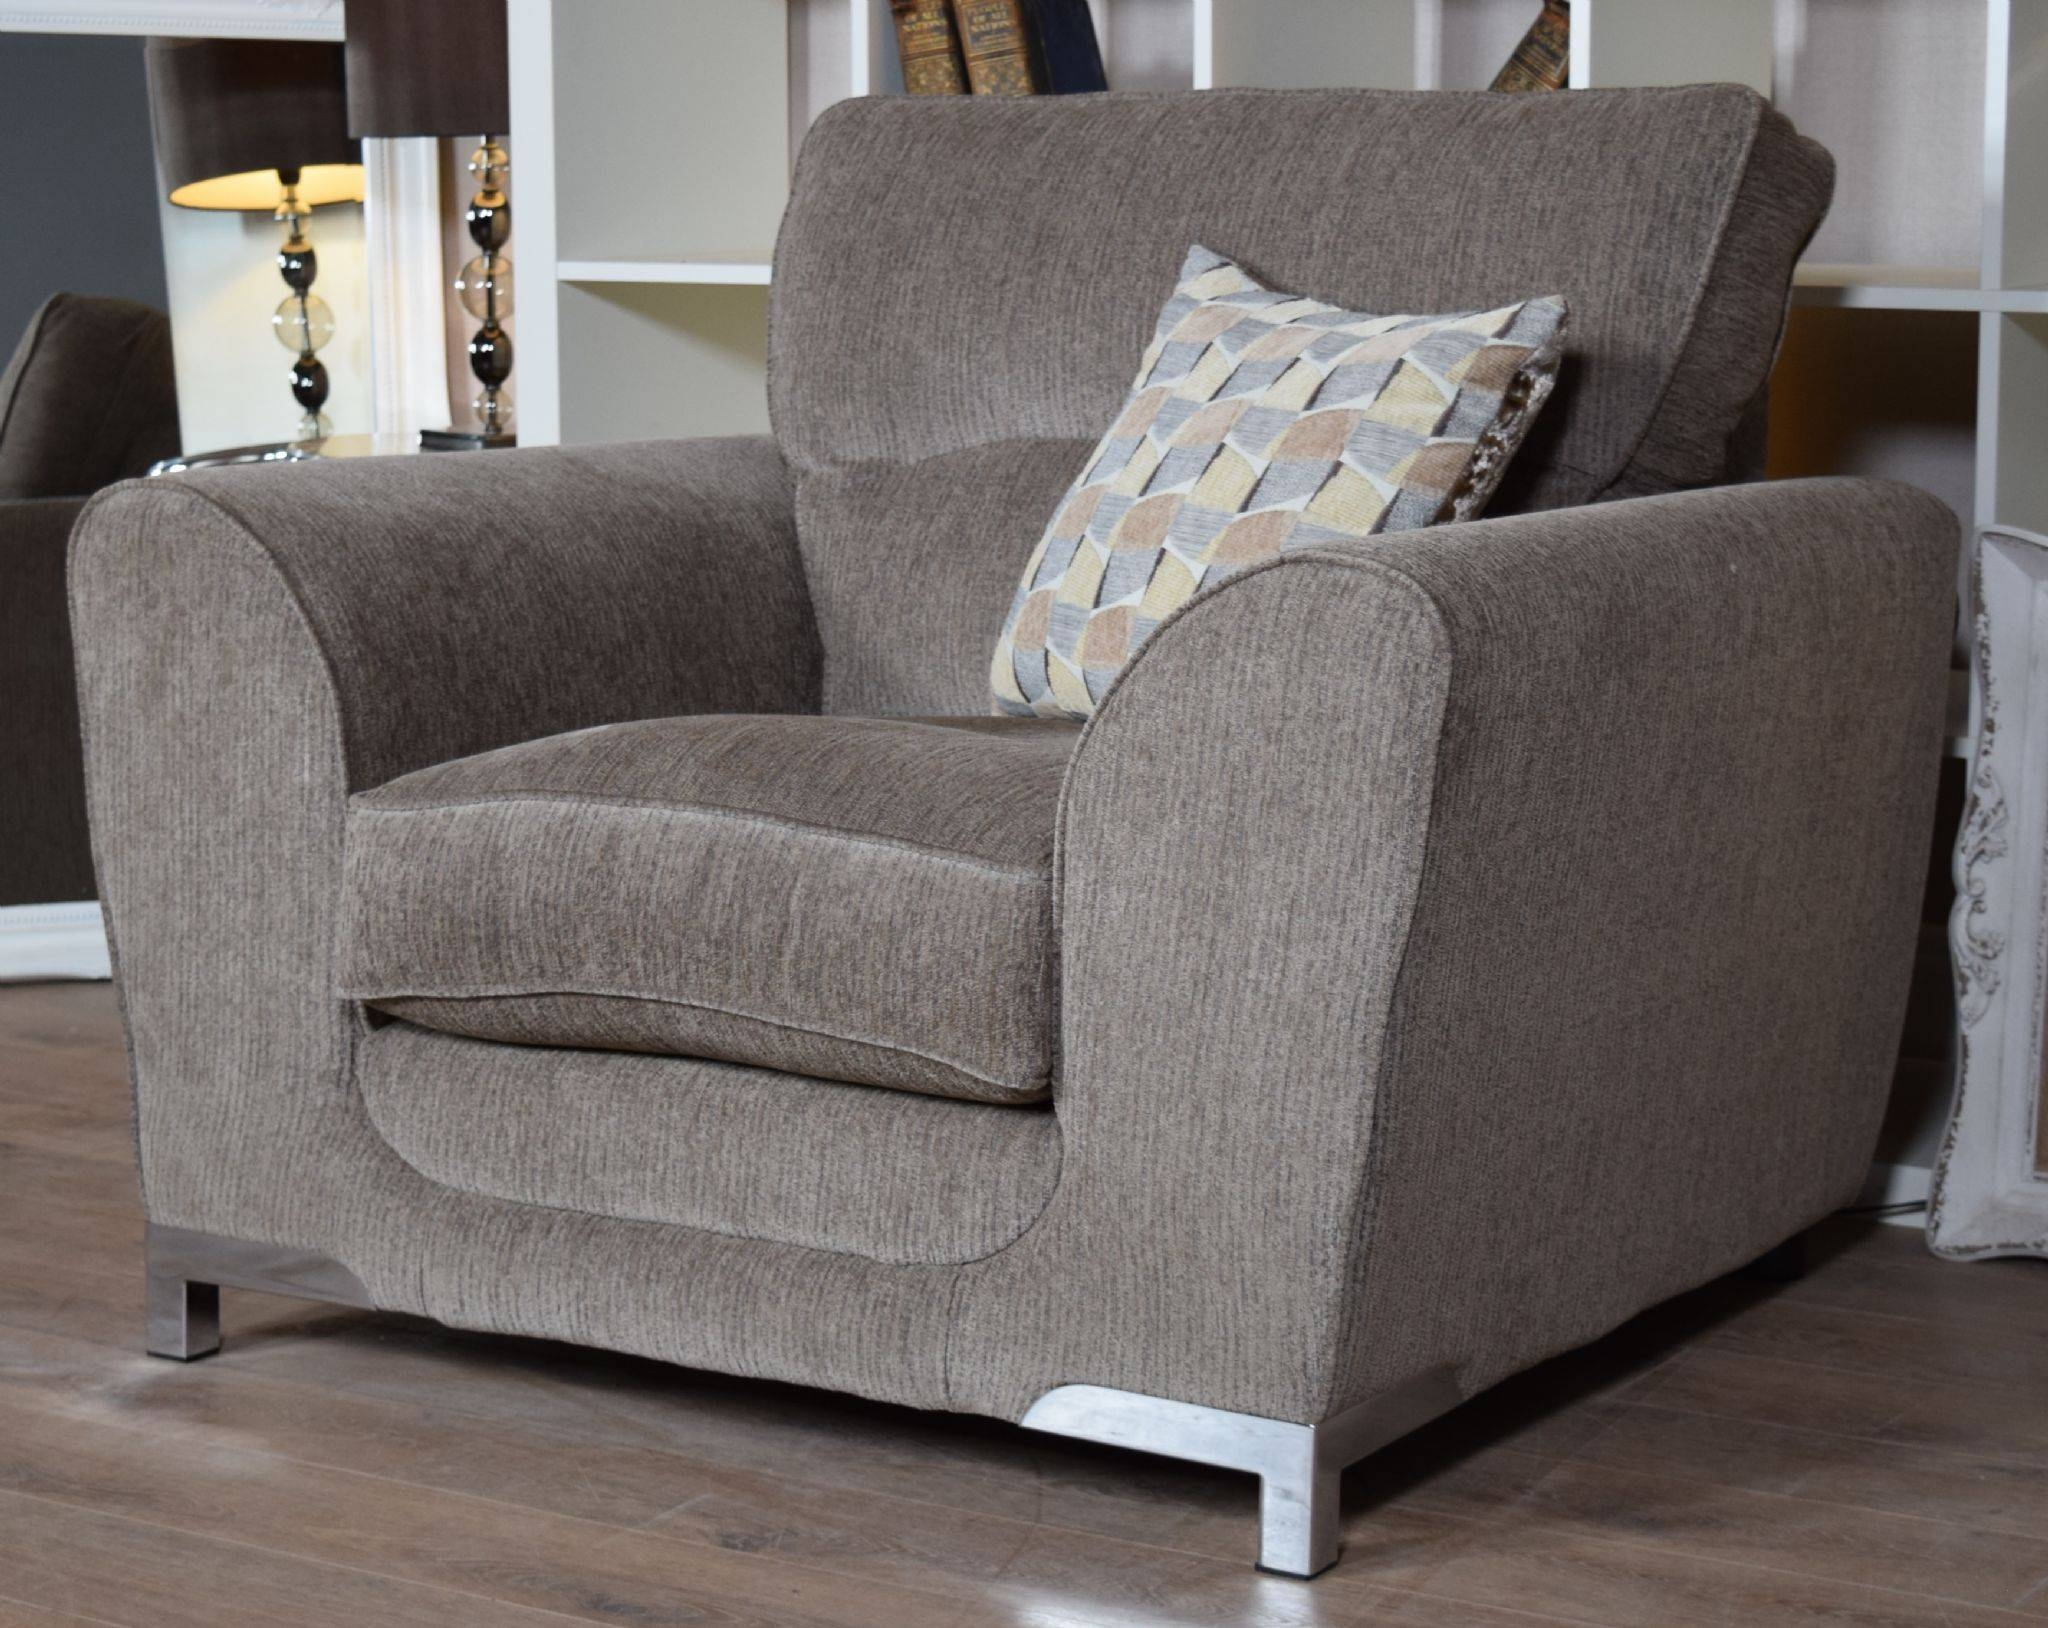 Set Nikki 3 Seater Sofa & Cuddle Chair Suite Set – Mocha Grey Inside 3 Seater Sofa And Cuddle Chairs (View 5 of 30)